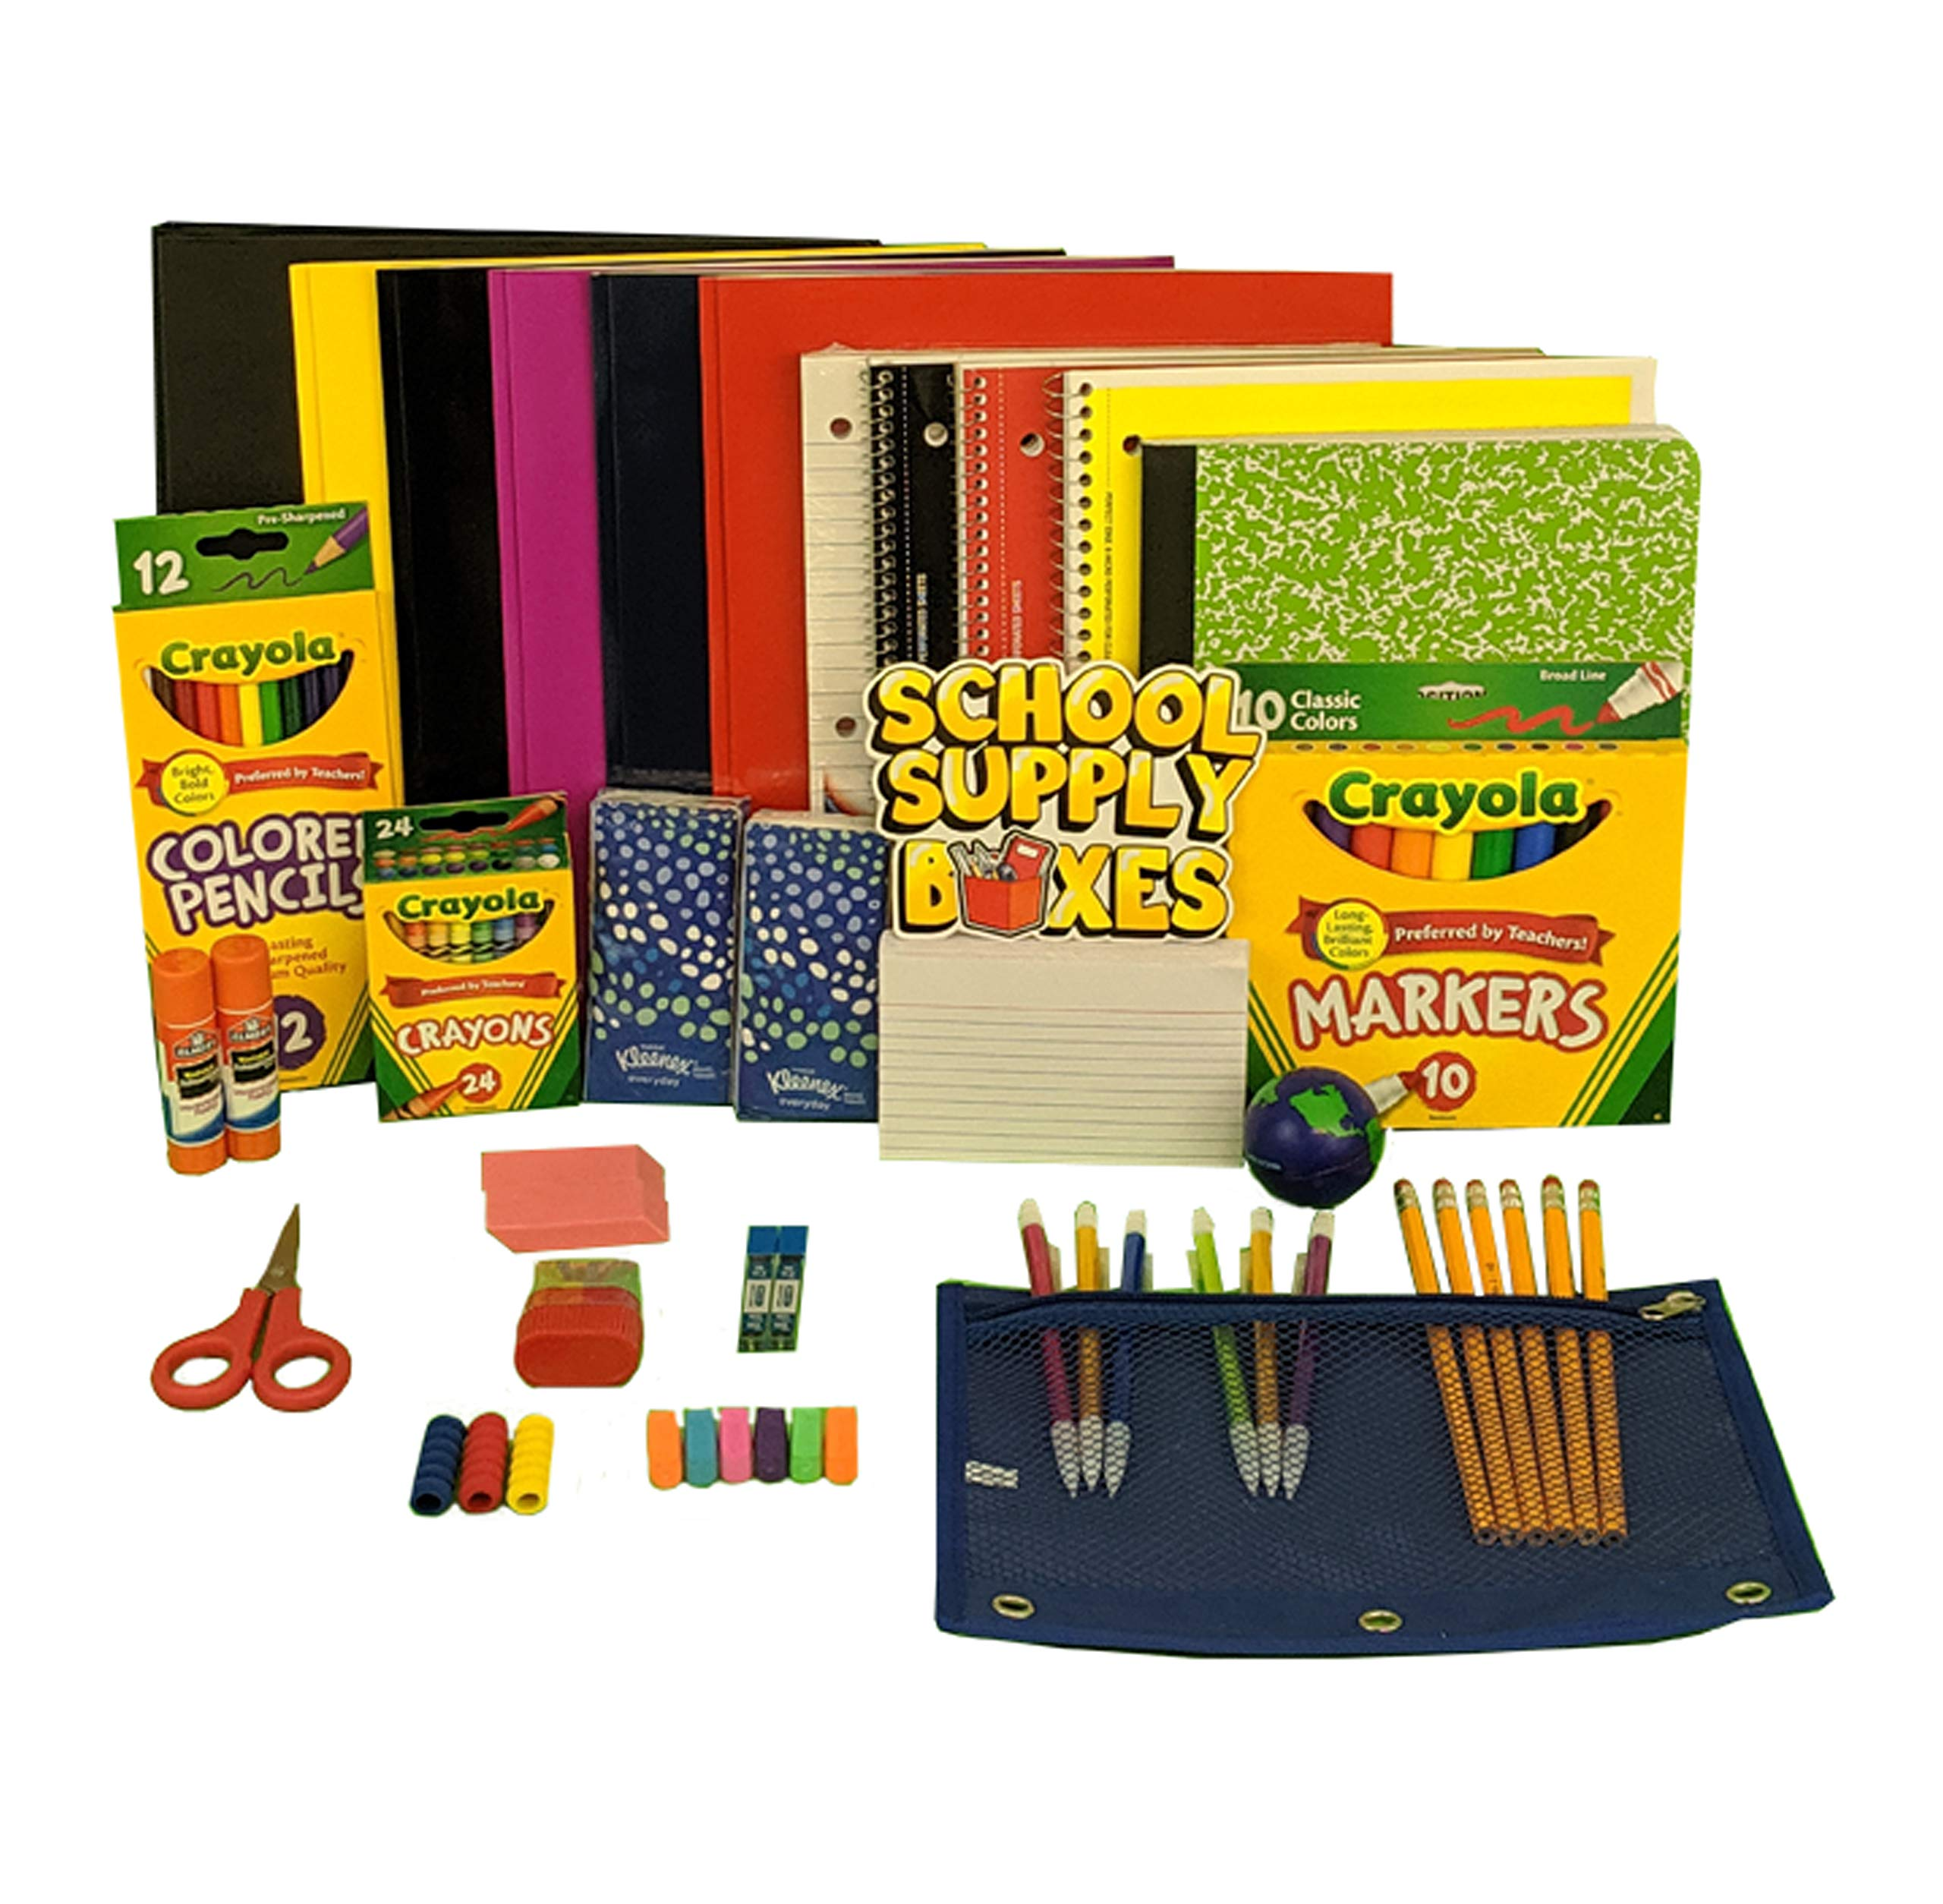 Elementary School Essentials Back to School Kit - School Supplies Bundle Includes 1'' Binder, Folder, Notebook, Filler Paper, Mechanical Pencil, Note Card, Black & Blue Pen, Stress Ball - 47 Pieces